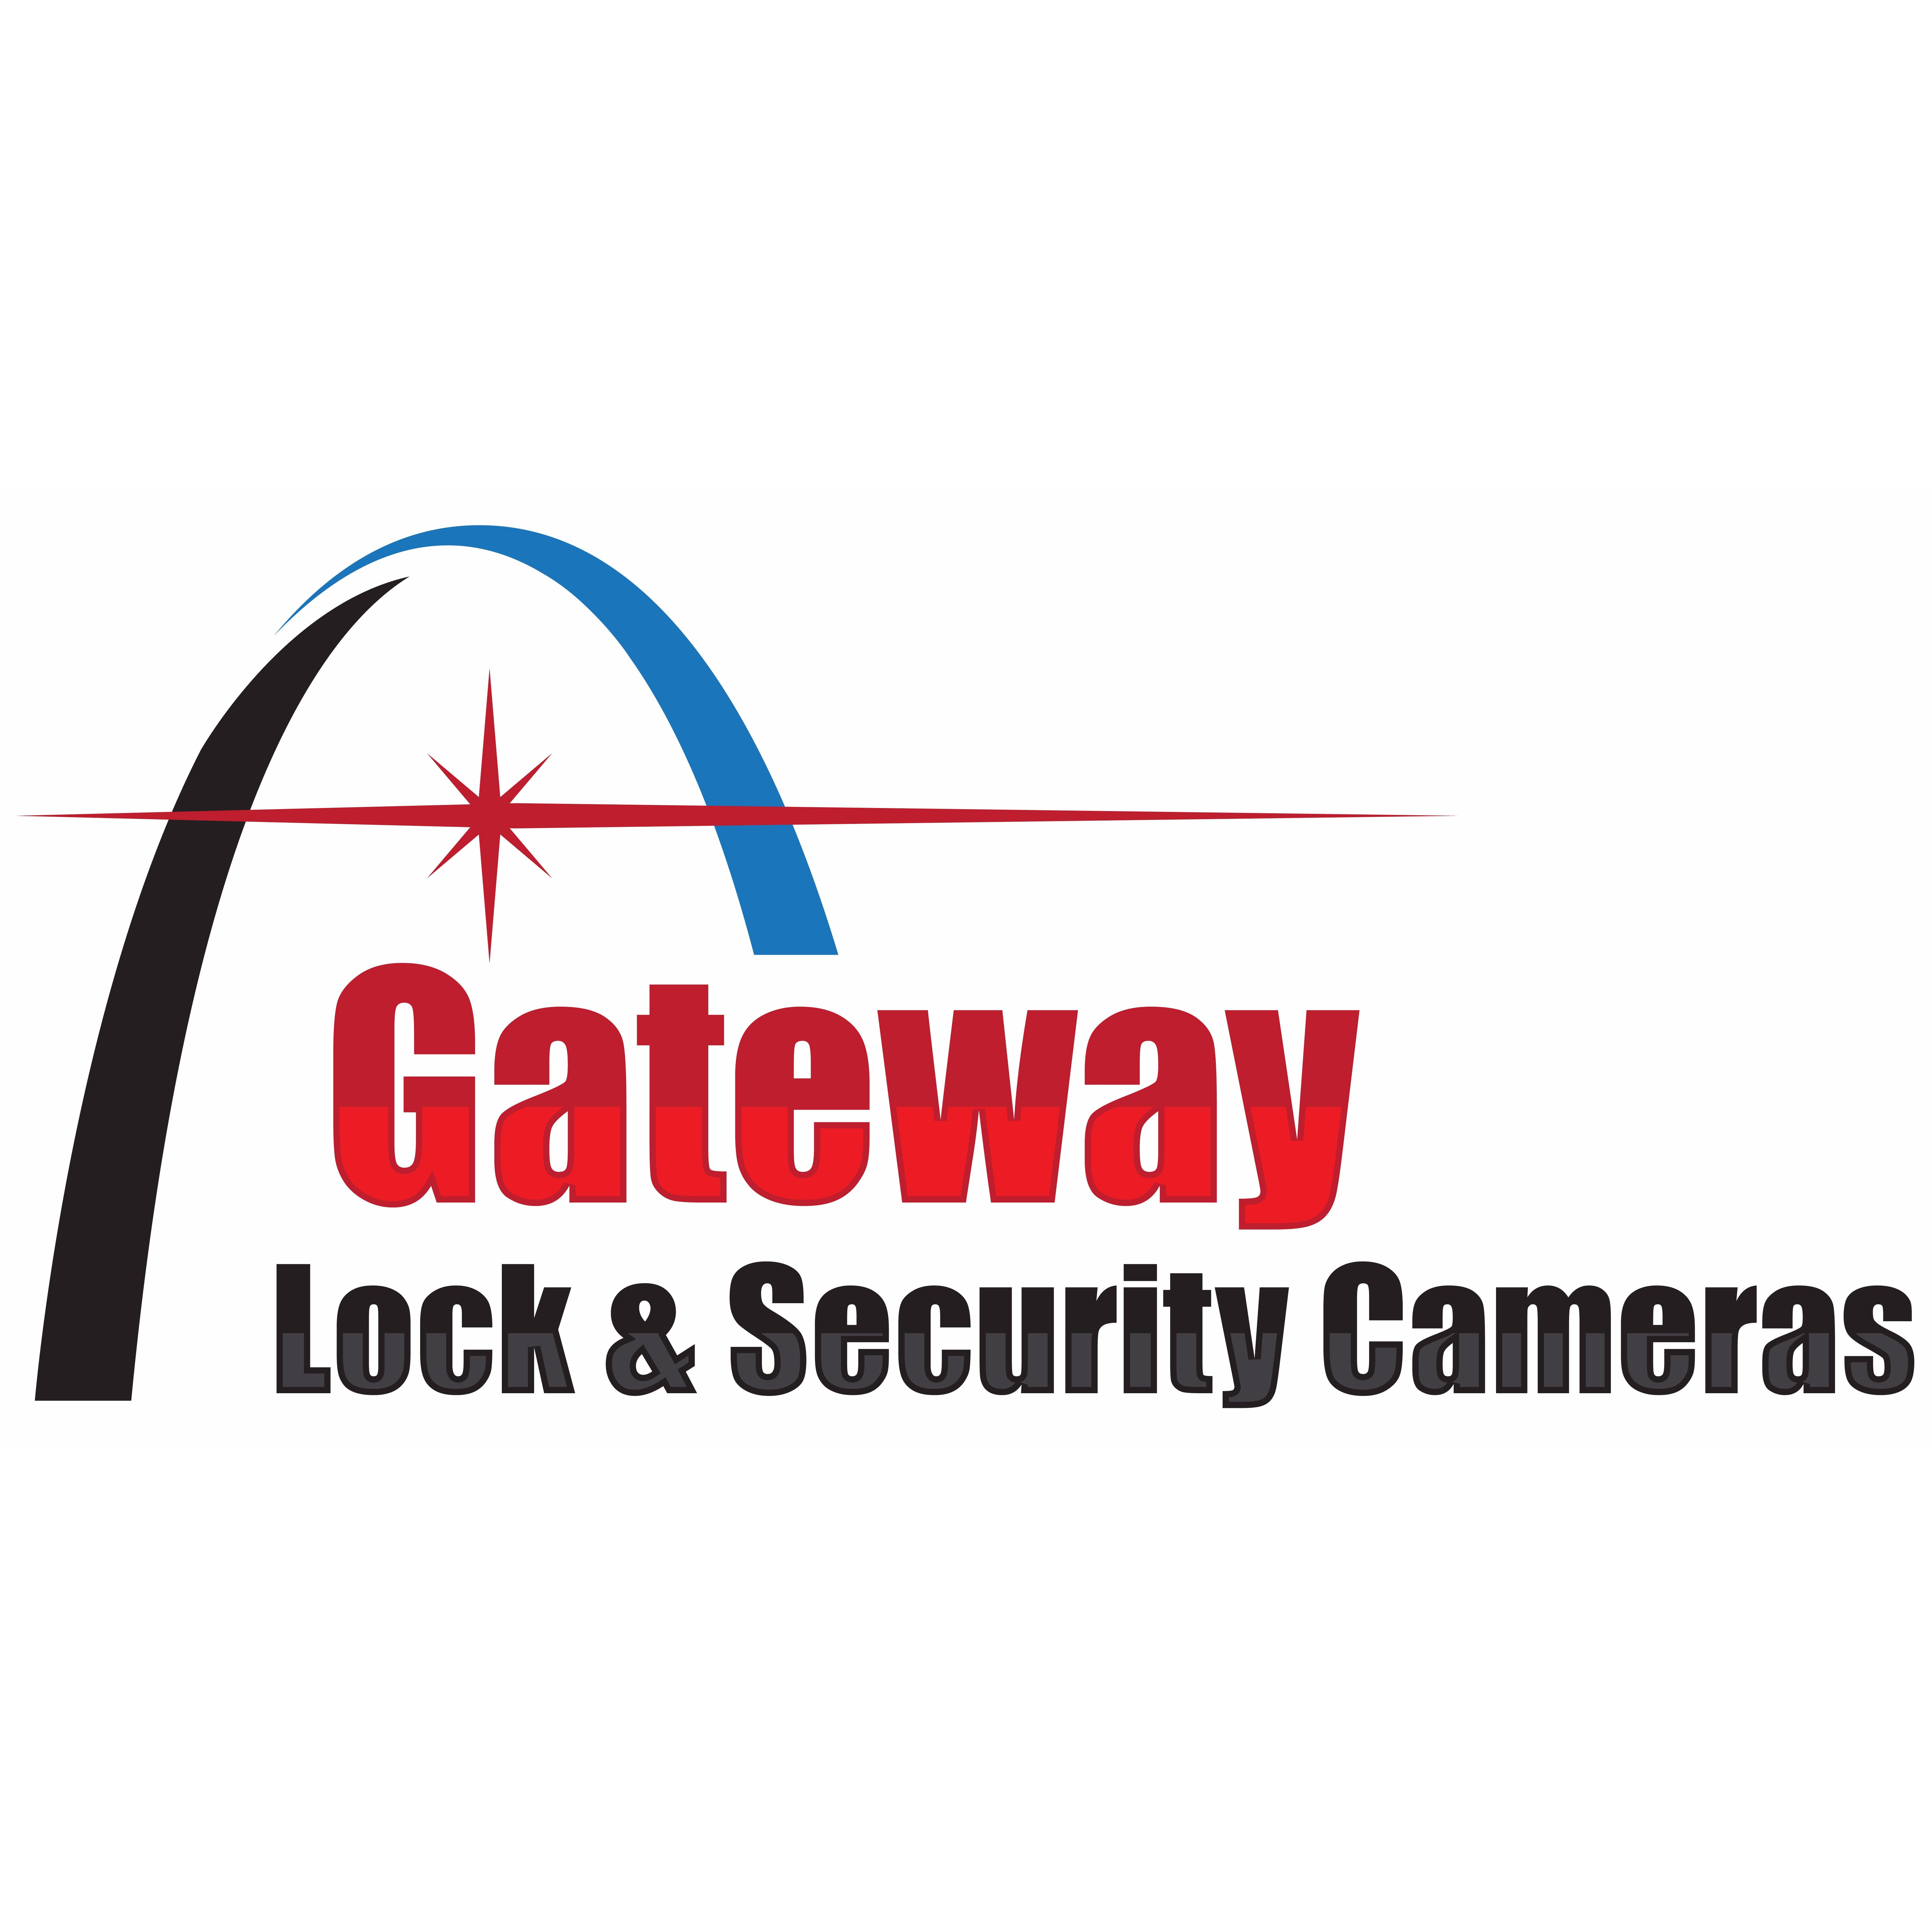 Gateway Lock & Security Cameras - Chesterfield, MO - Home Security Services